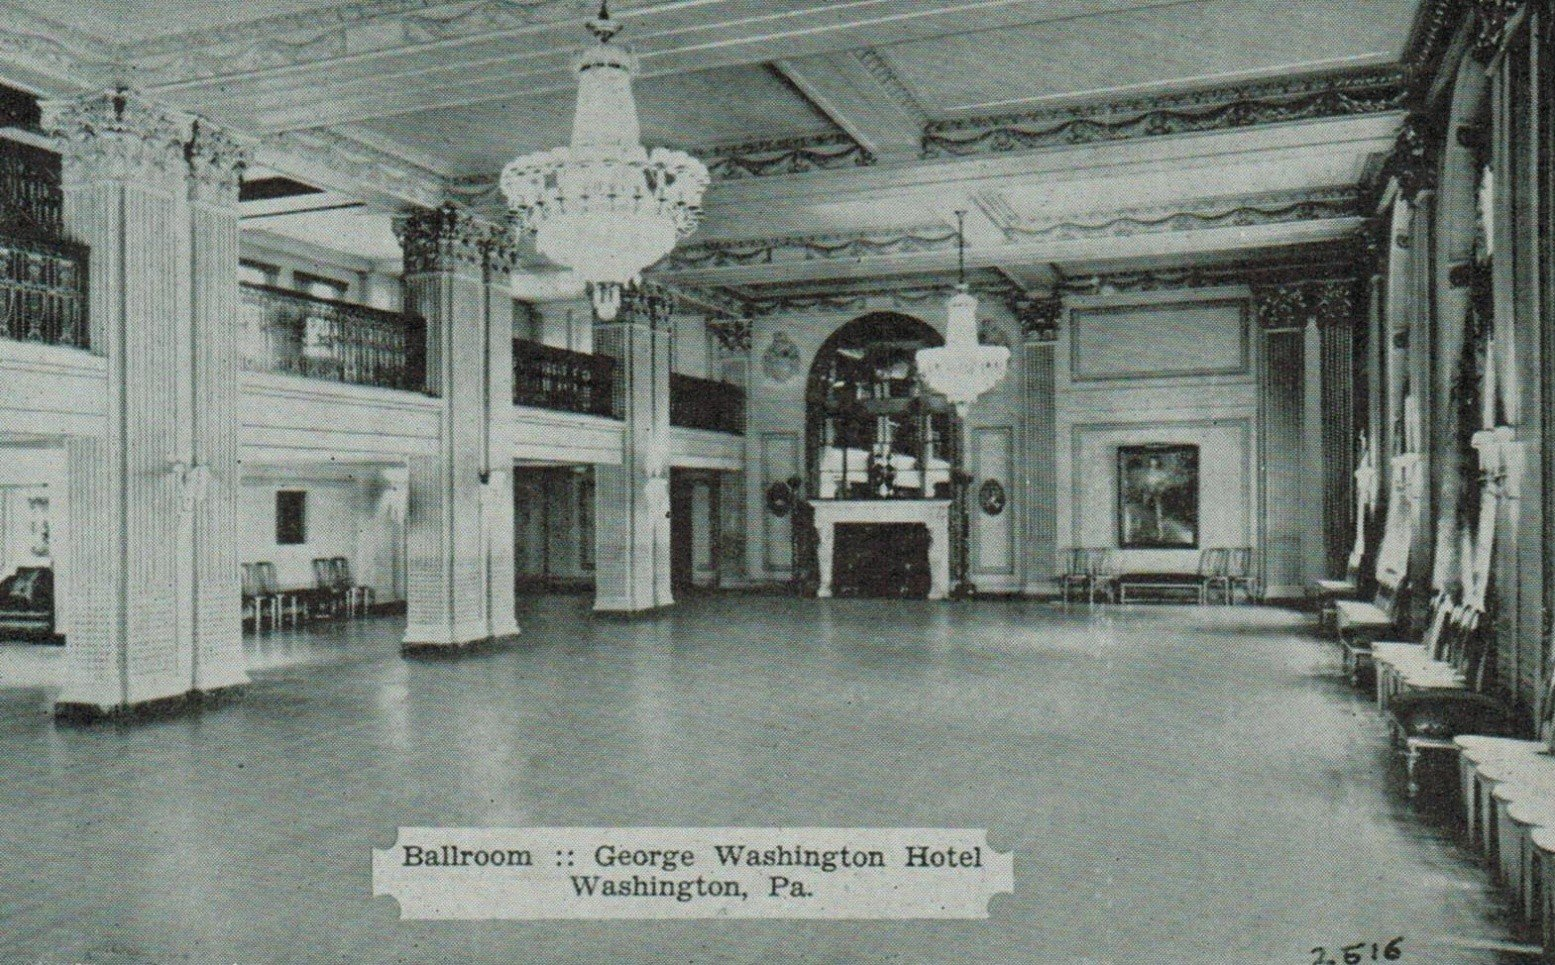 Another postcard of a ballroom inside the hotel.